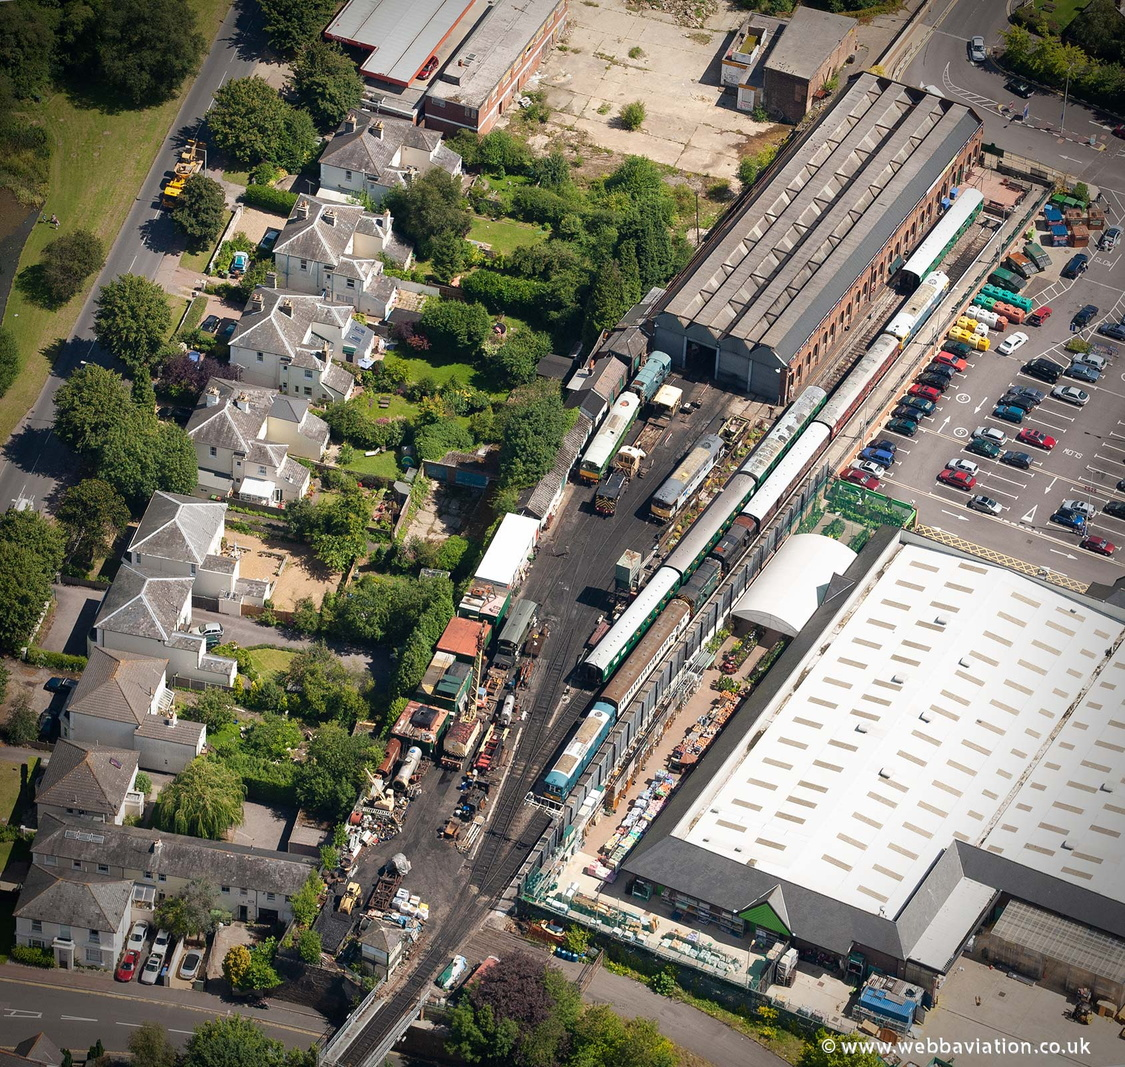 Spa Valley Railway, Tunbridge Wells West railway station from the air